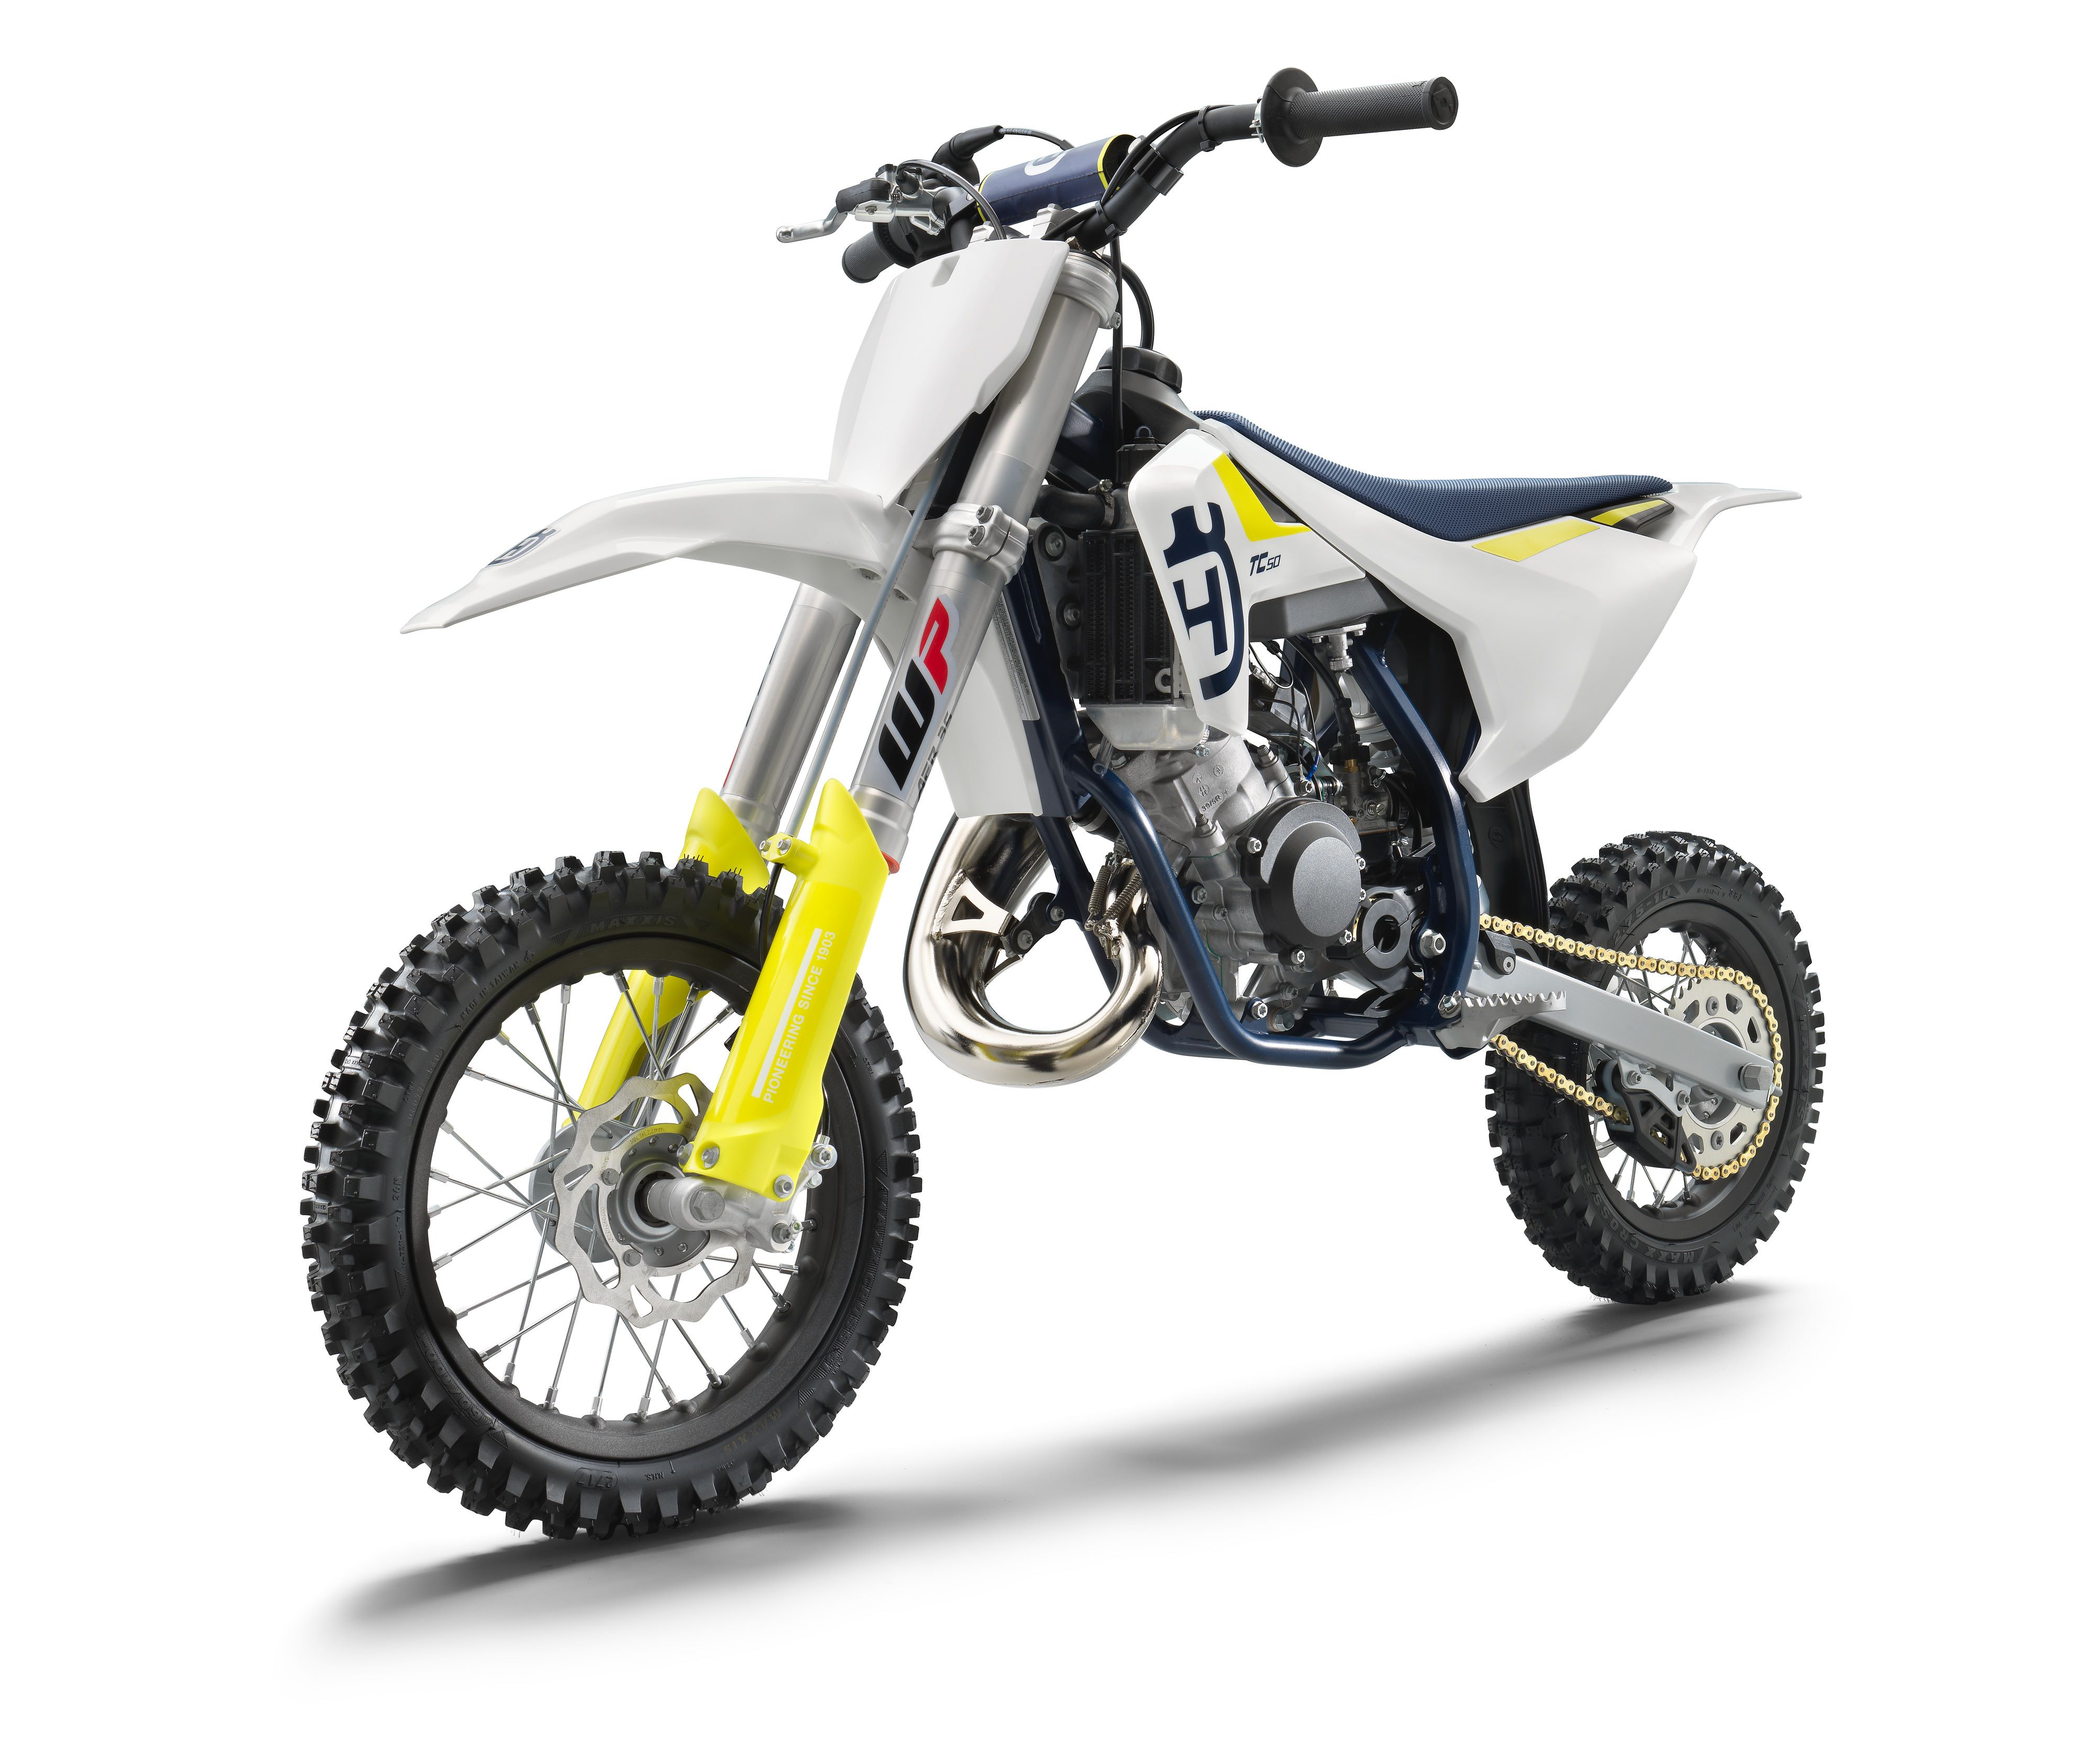 husqvarna motorcycles present 2019 mini motocross range totalmotorcycle. Black Bedroom Furniture Sets. Home Design Ideas